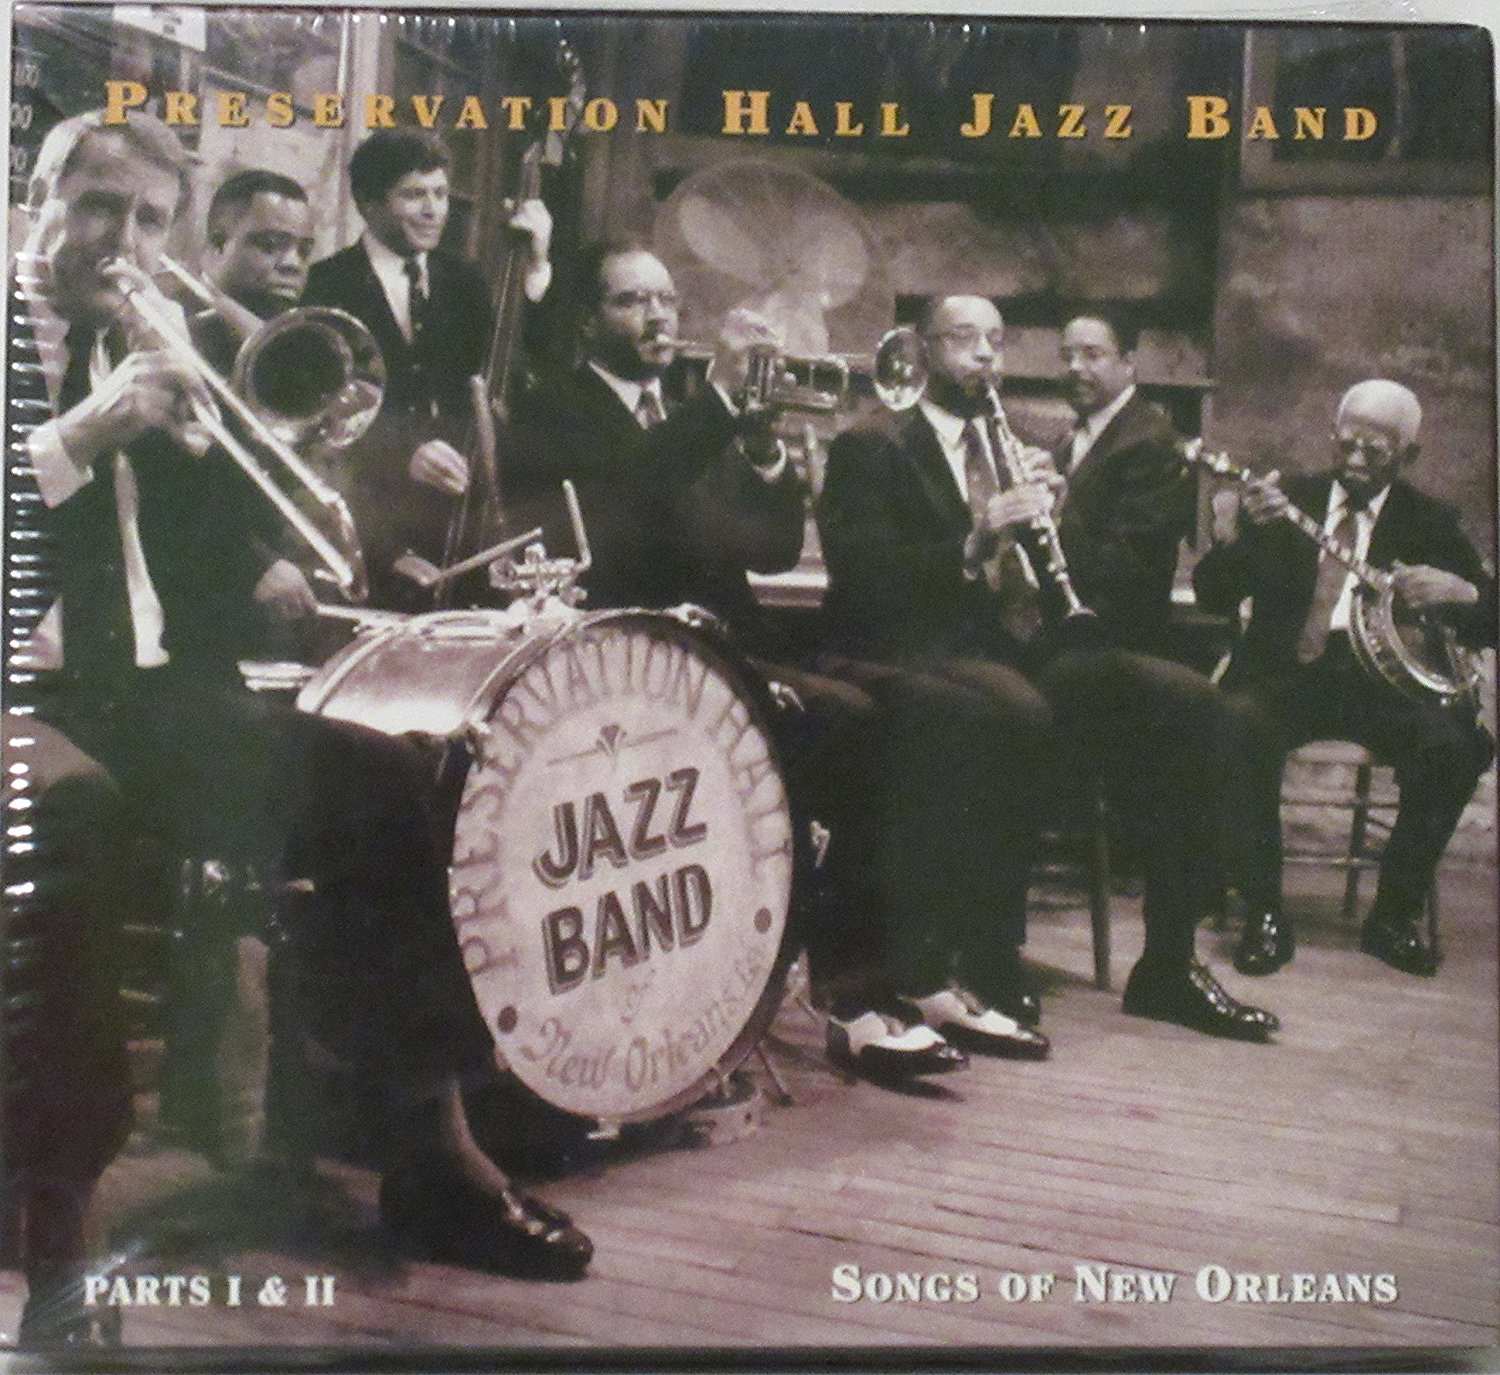 Songs of New Orleans (Parts I & 2)